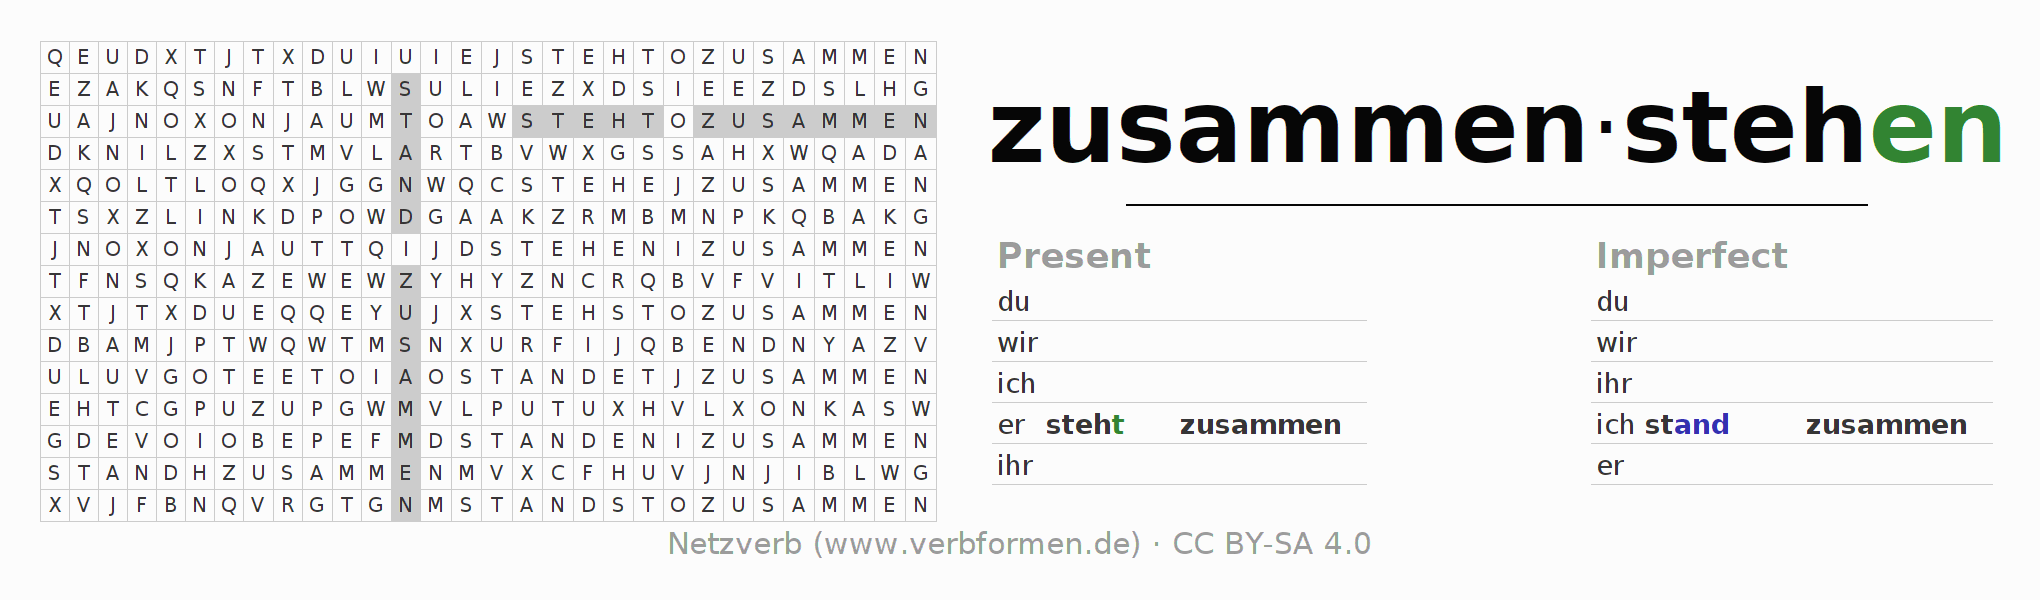 Word search puzzle for the conjugation of the verb zusammenstehen (hat)